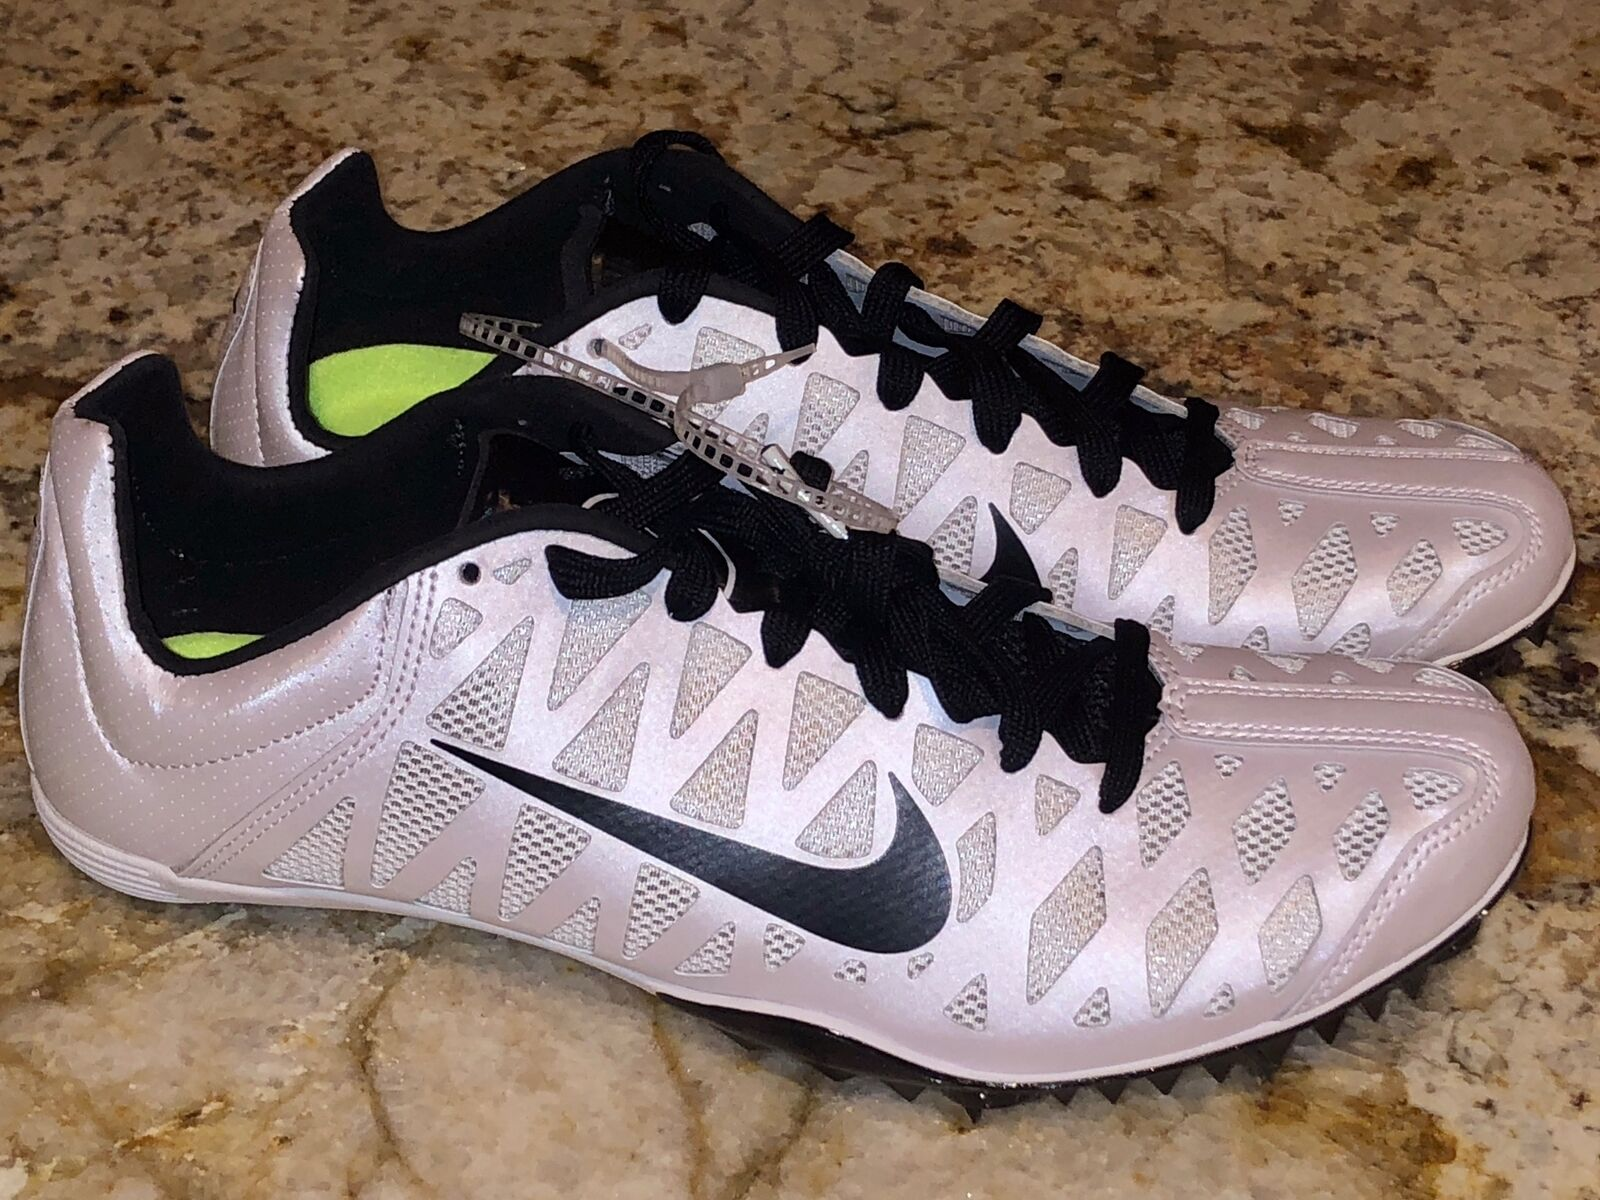 NIKE Zoom Maxcat 4 Sprint White Black Track Running Spikes shoes NEW Mens Sz 6 9